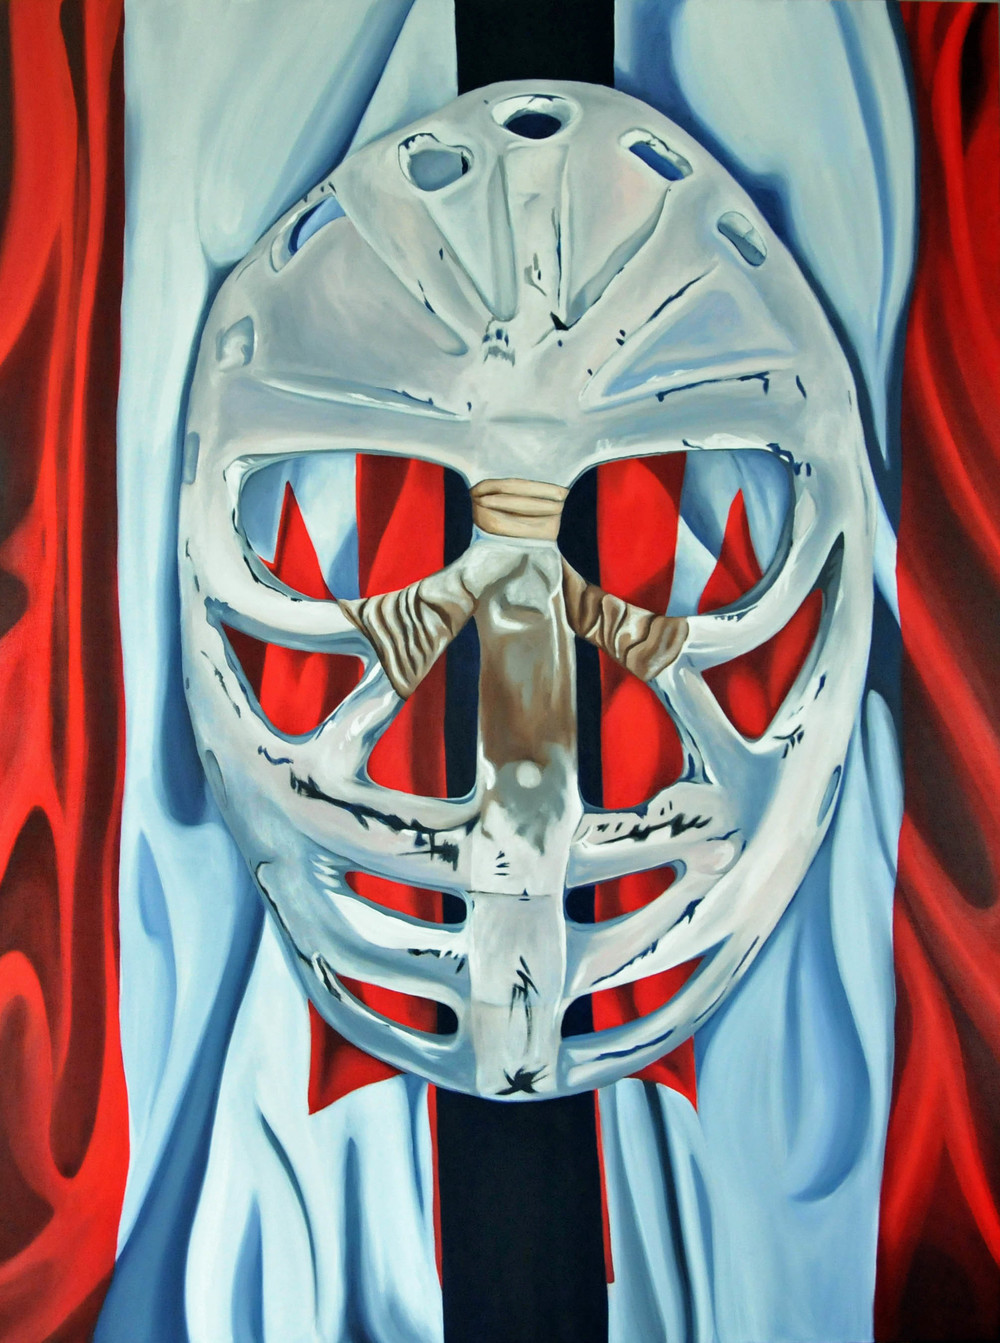 Goalie's Mask: red, white & Dryden - Brandy Saturley, 2011